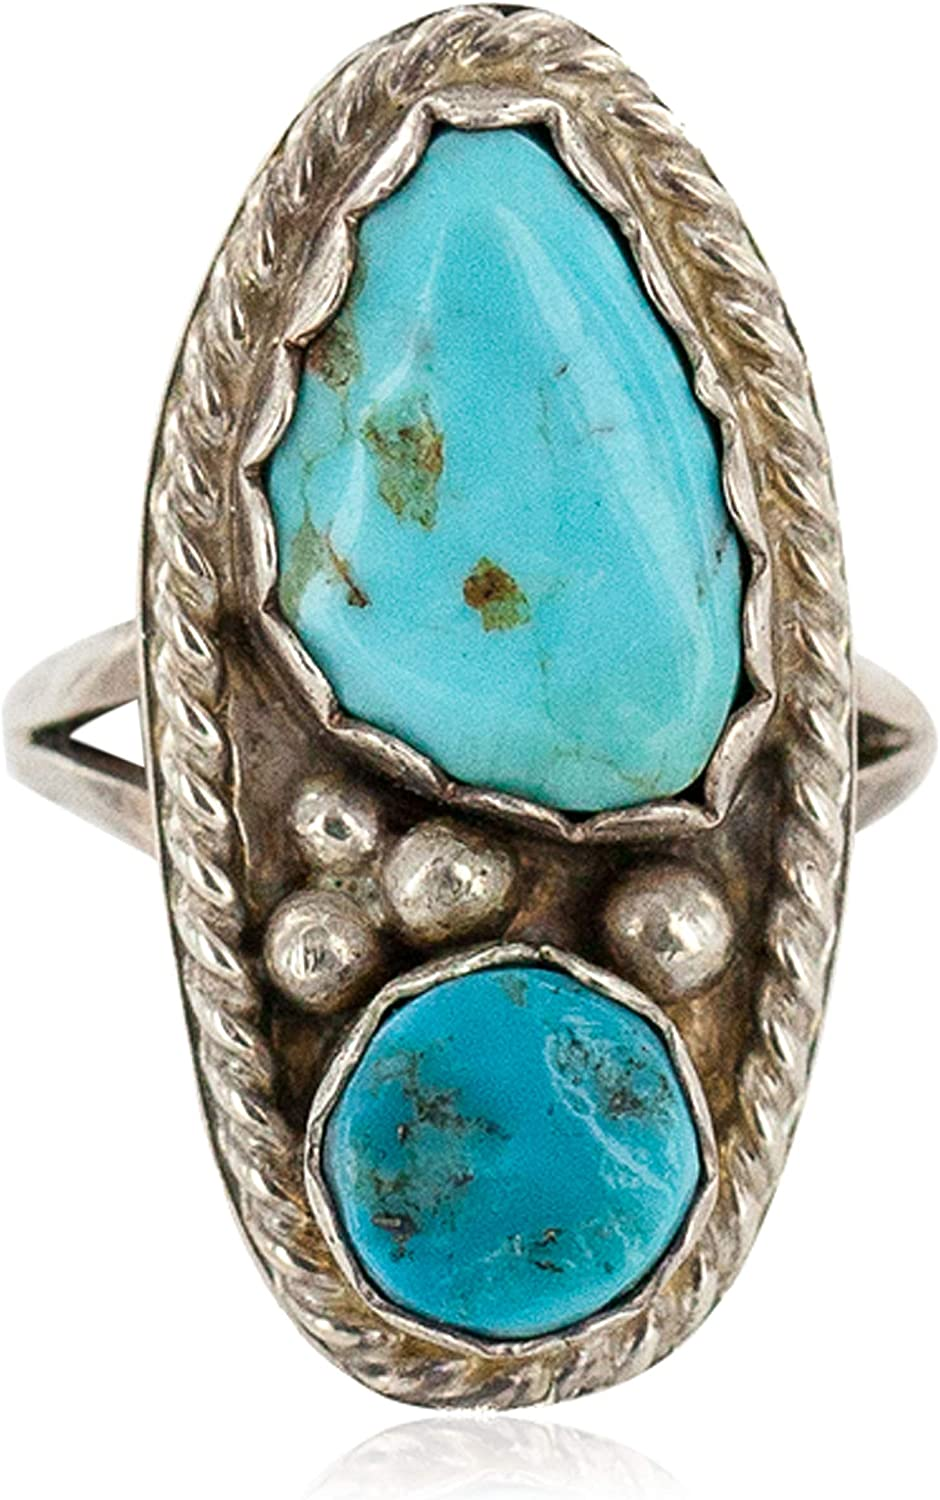 $250Tag Certified Silver Navajo Natural Turquoise Native Ring Size 9 1//2 26208-1 Made by Loma Siiva